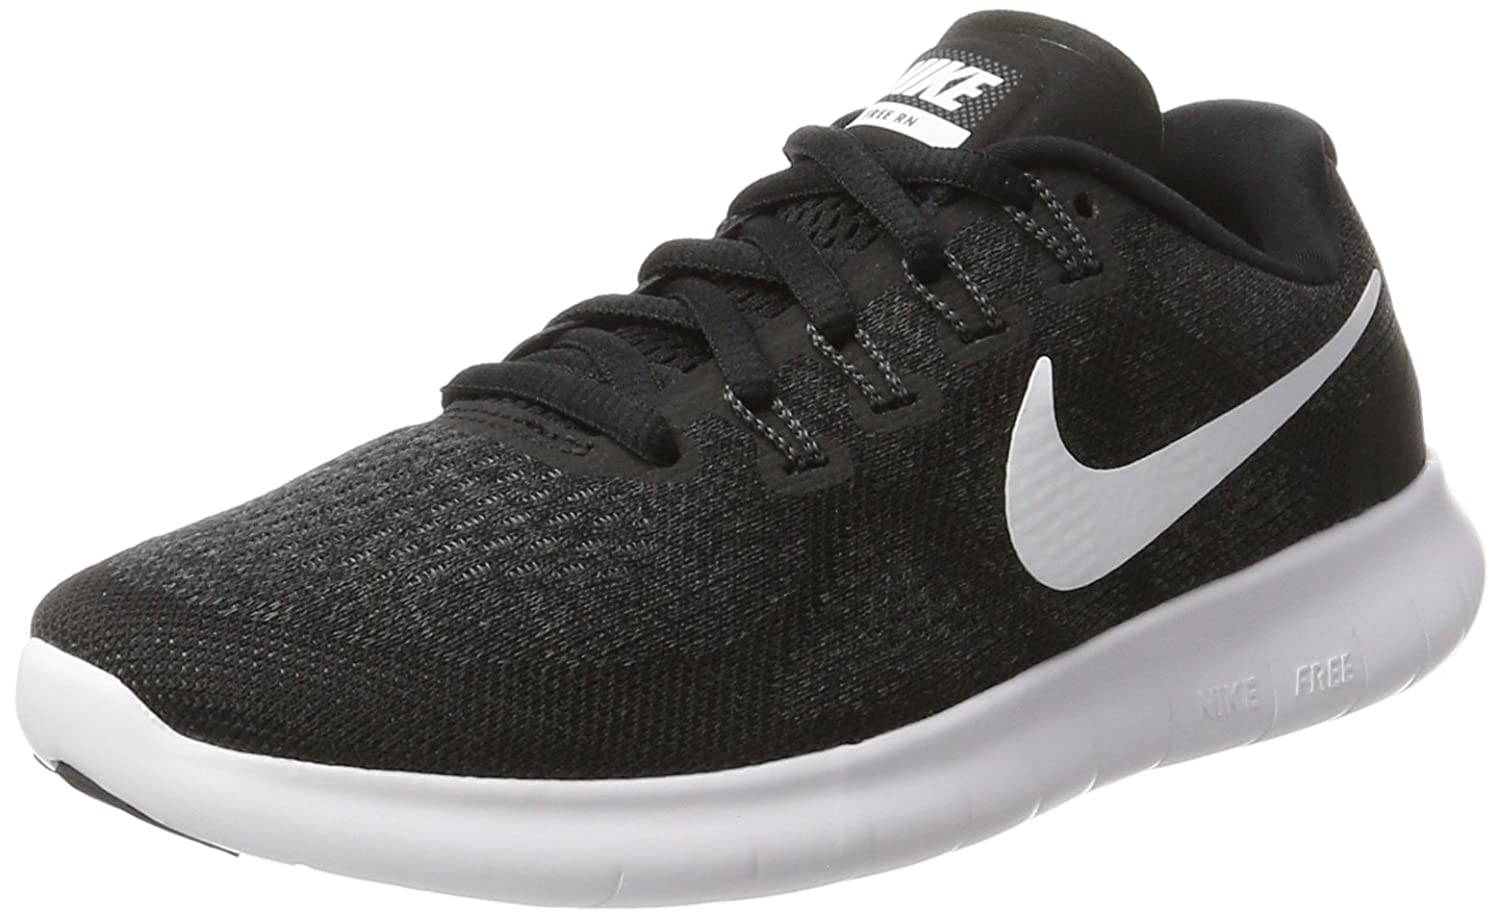 NIKE Women's Free RN 2017 Running Shoe B01K0NQQDG 12 B(M) US|Black/White/Dark Grey/Anthracite